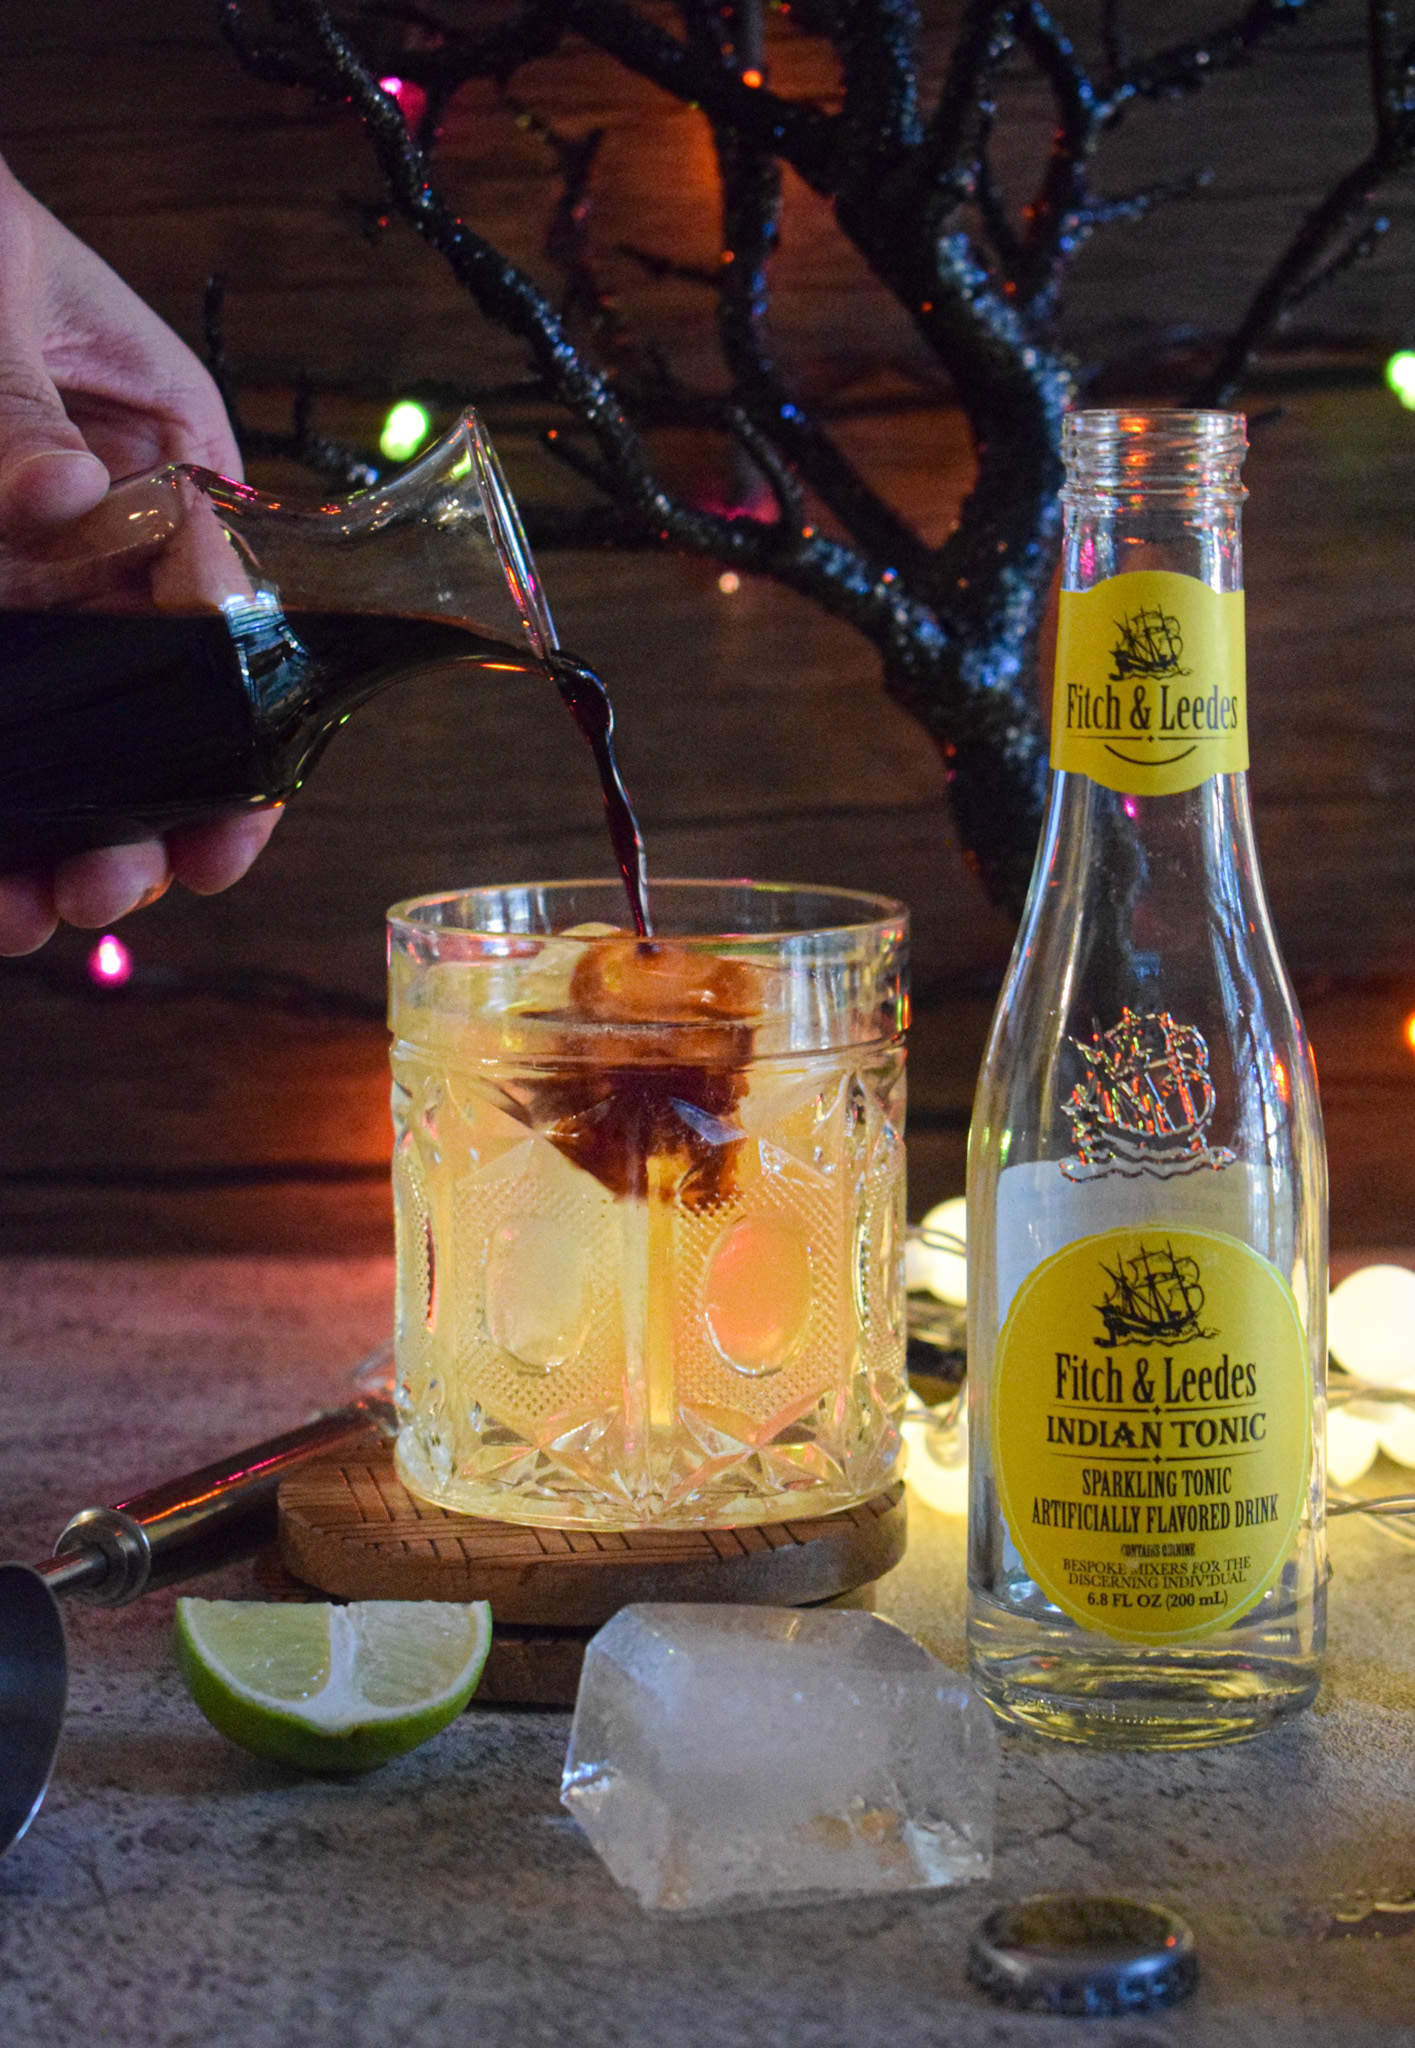 spooky halloween gin cocktail recipe using fitch & leedes premium Indian tonic water